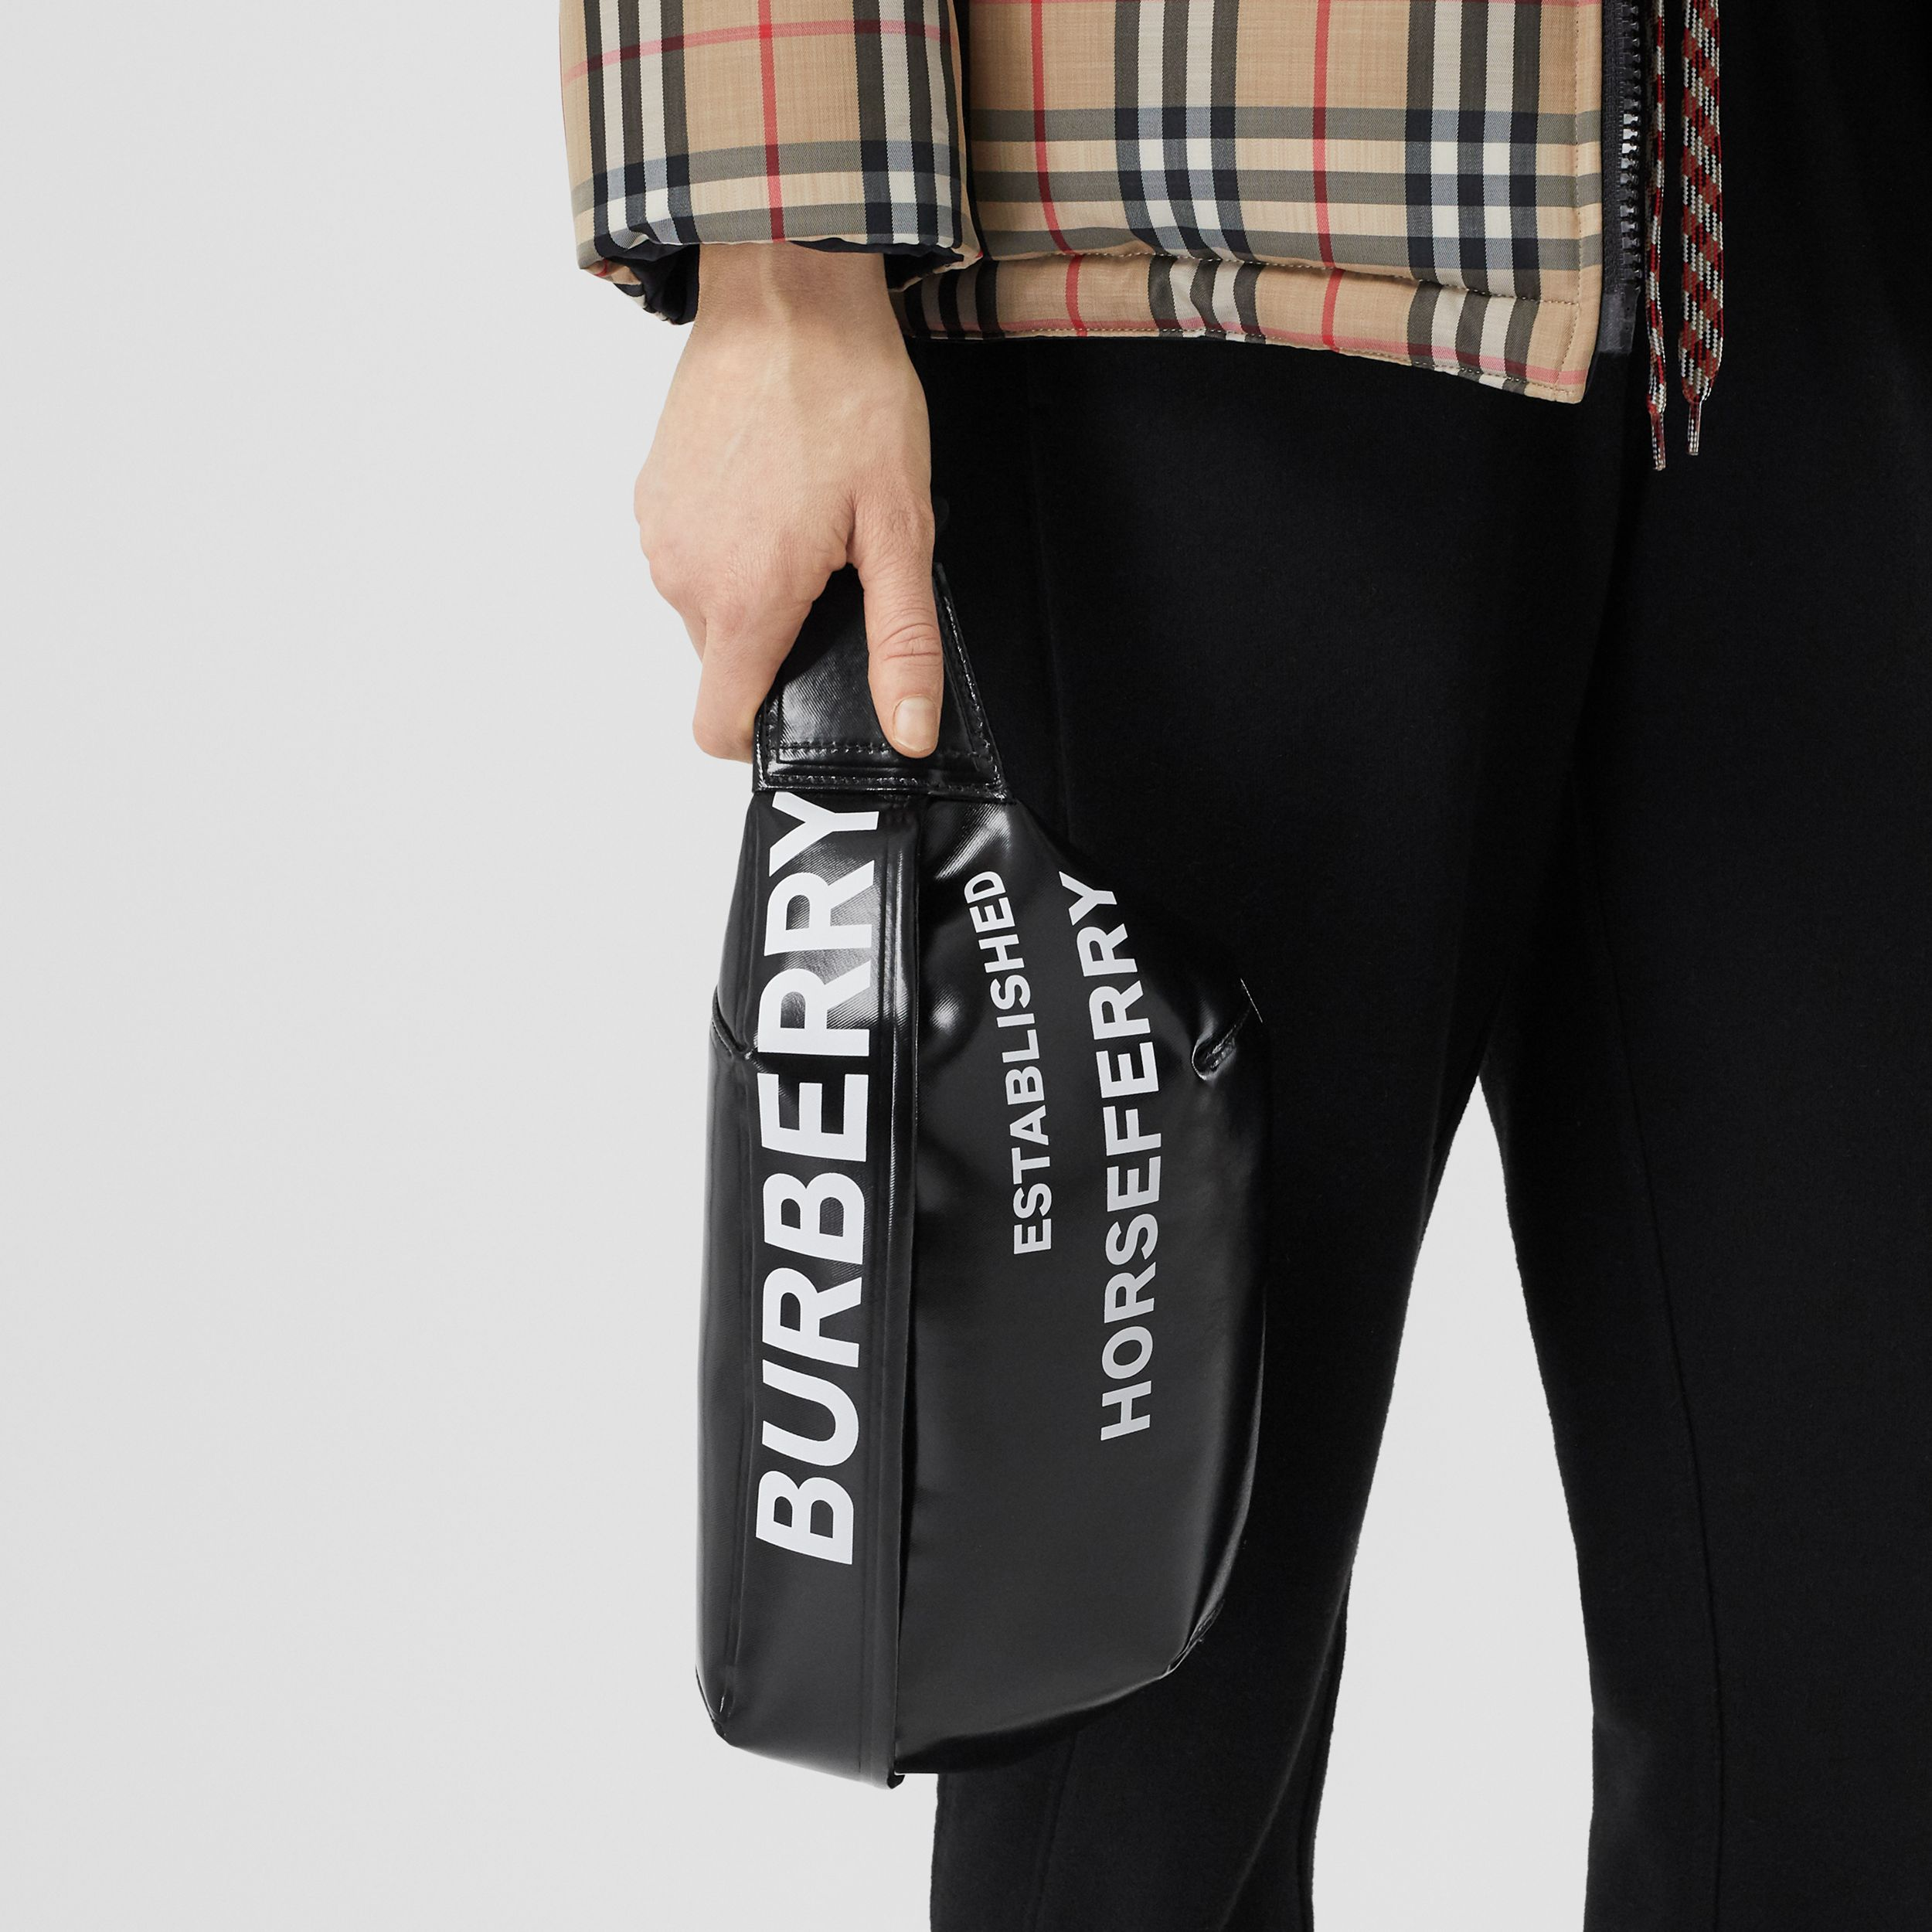 Medium Horseferry Print Bum Bag in Black | Burberry - 3